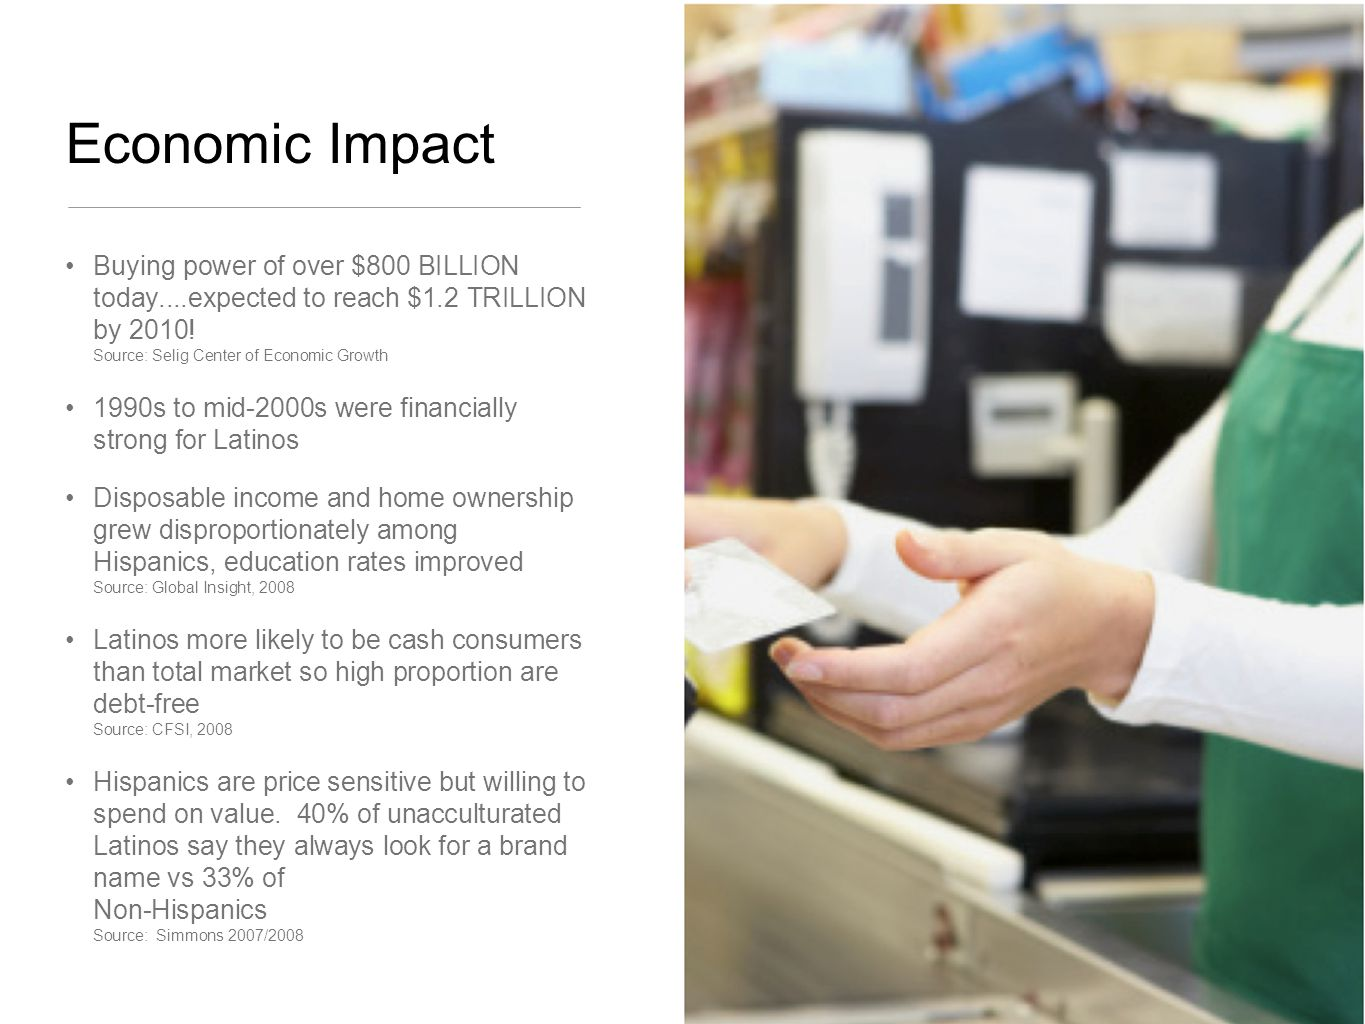 Economic Impact Buying power of over $800 BILLION today....expected to reach $1.2 TRILLION by 2010.